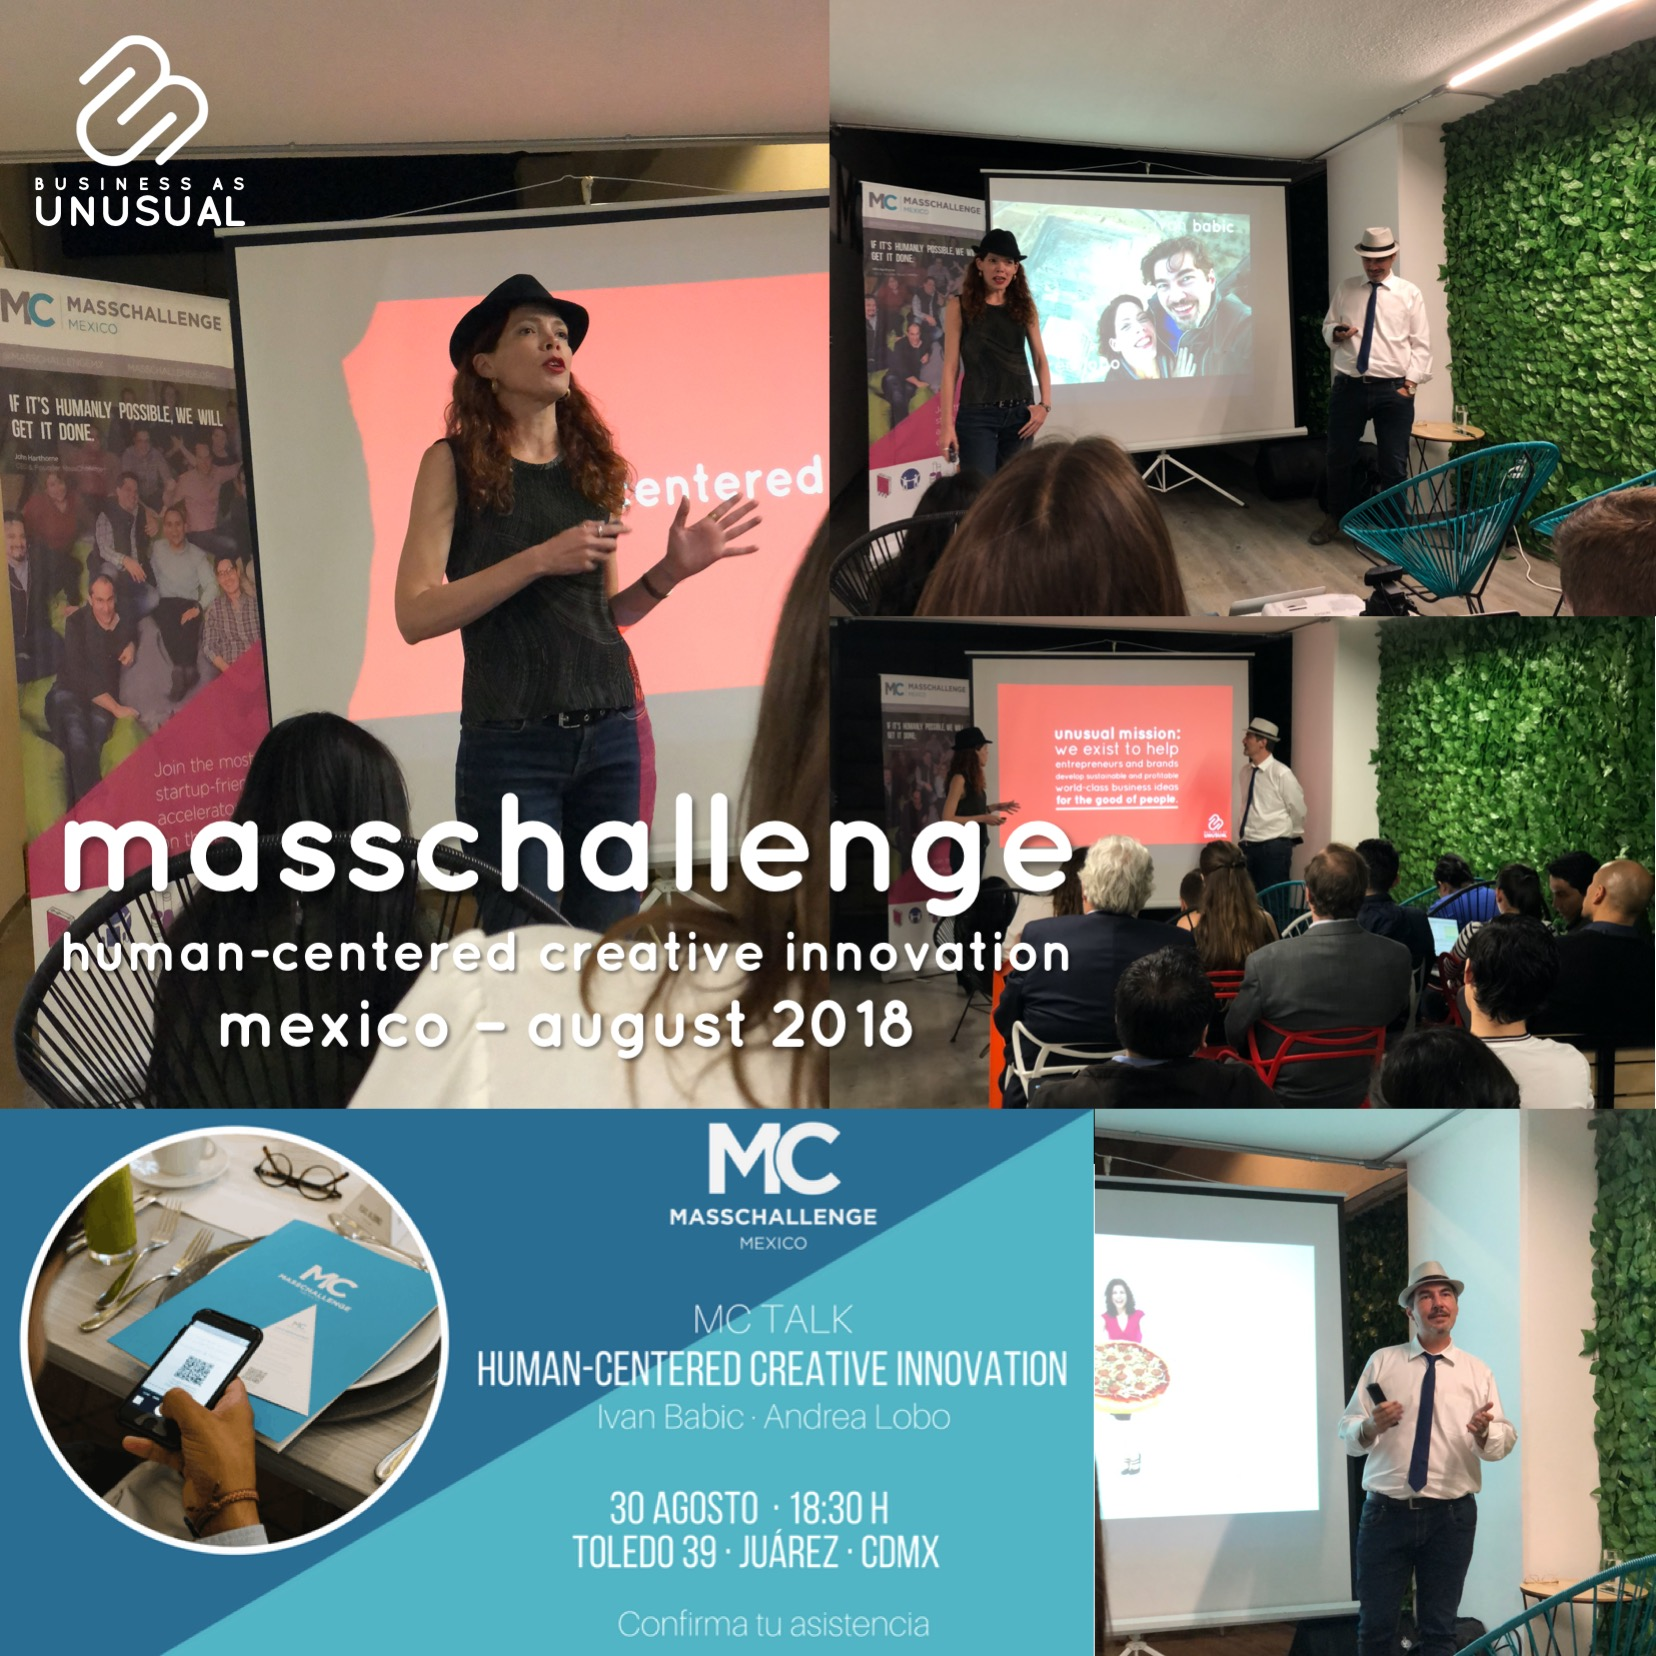 Masschallenge - Human-Centered Creative Innovation - Mexico August 2018